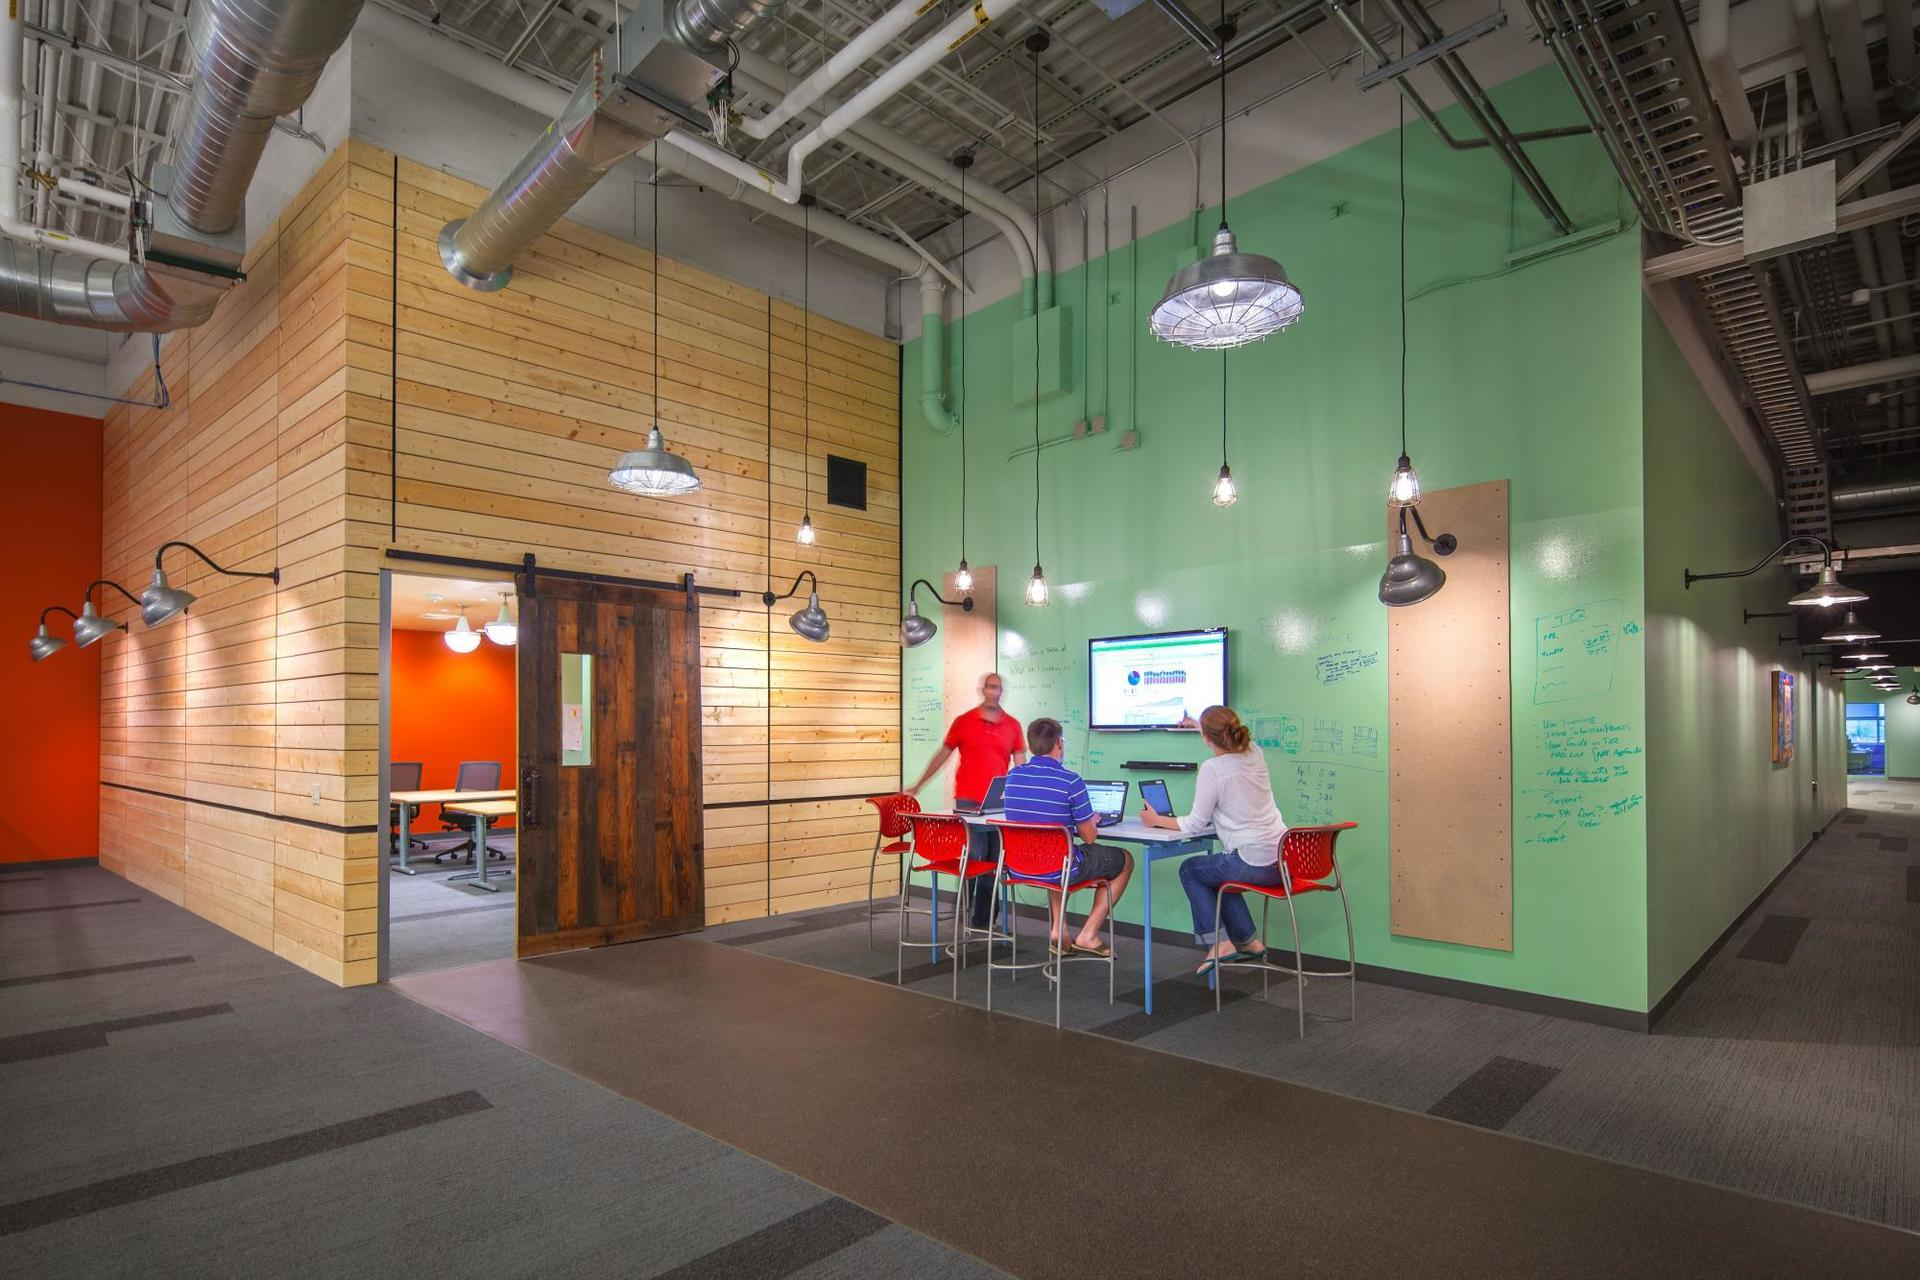 Open office space can be found at The Paradigm offices, with lighting completed by Bock Lighting.